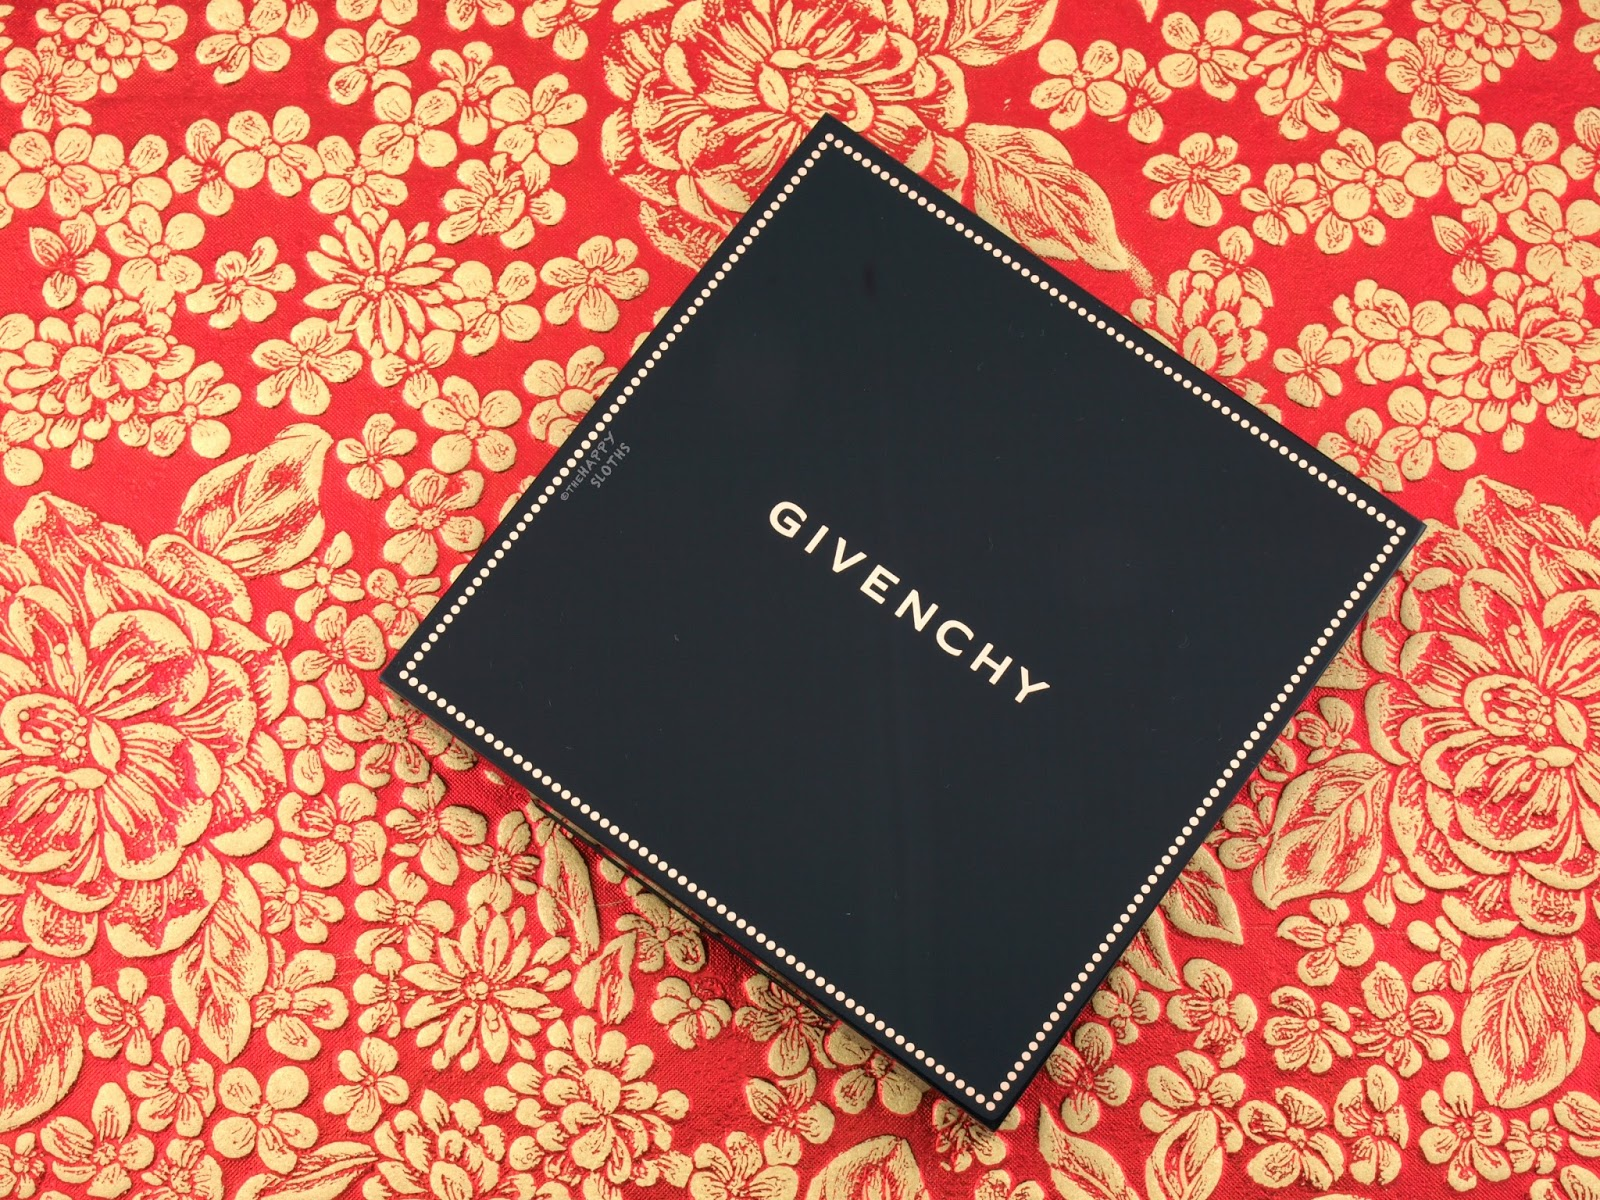 Givenchy Les Saisons 2017 Gypsophila Collection | Healthy Glow Powder: Review and Swatches